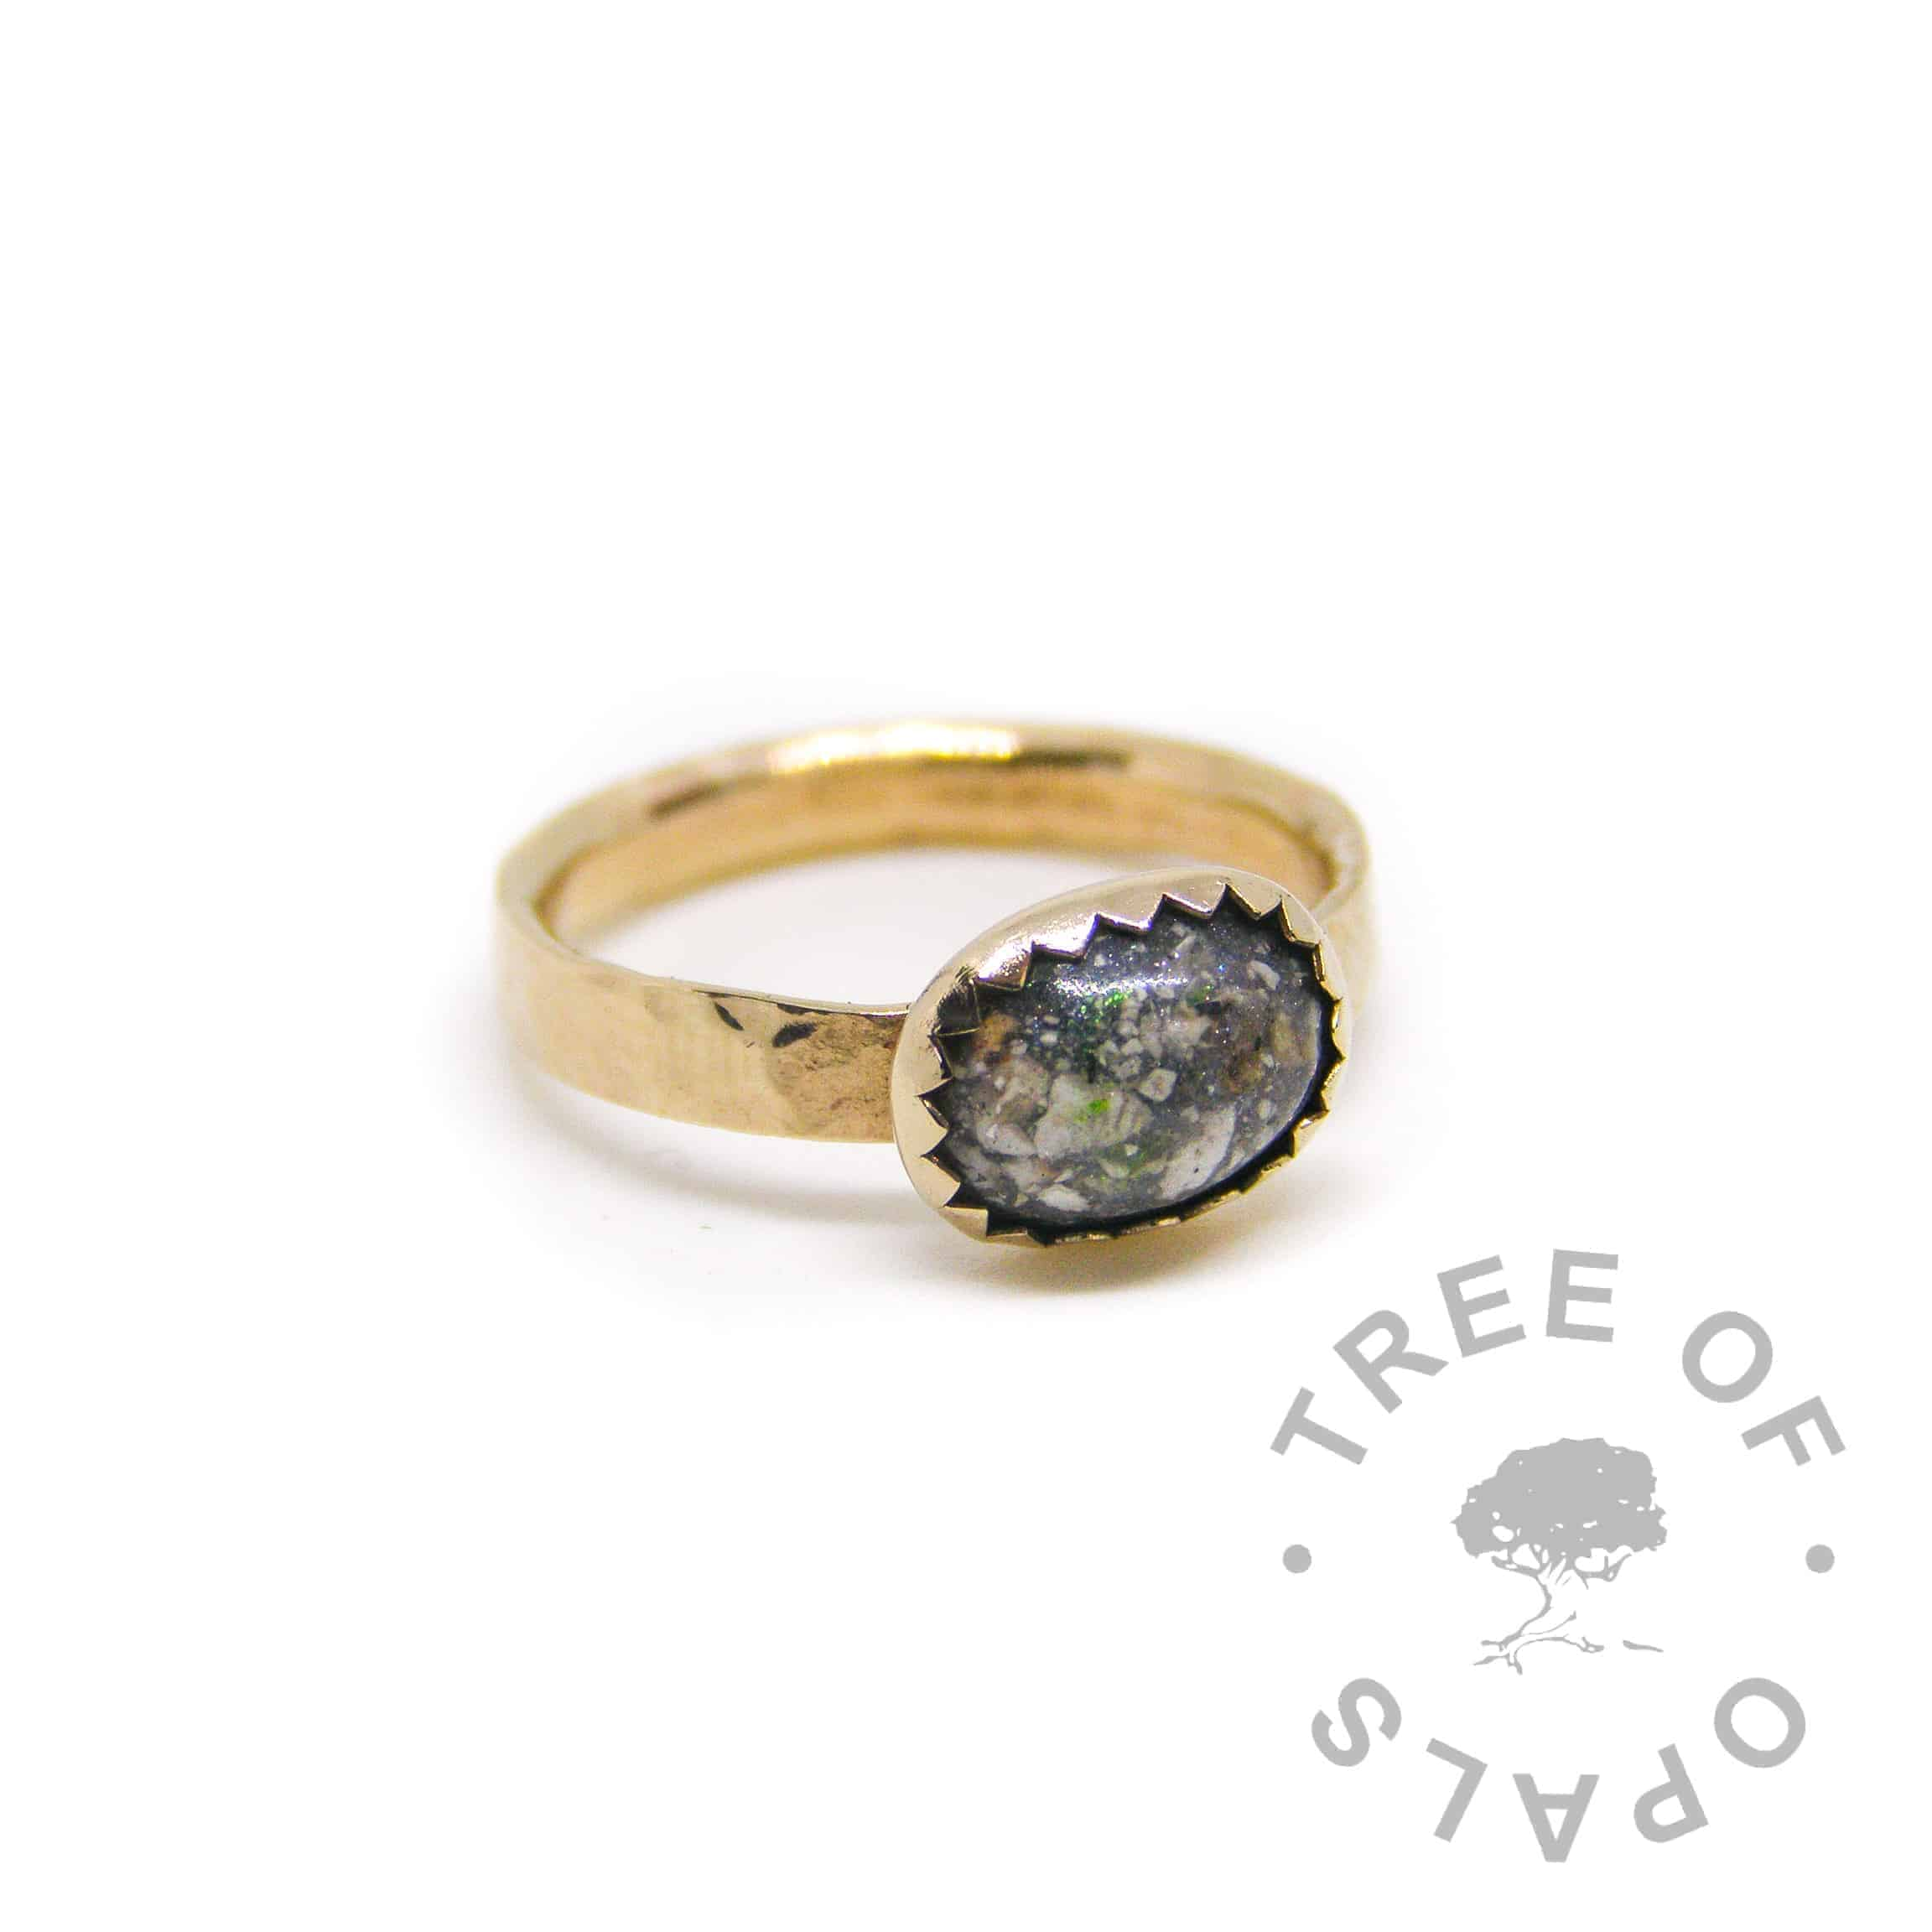 solid gold cremation ash ring textured 14ct hallmarked yellow gold stacking ring, cremation ash with basilisk green sparkle mix in an 8x6mm cabochon handmade by Tree of Opals